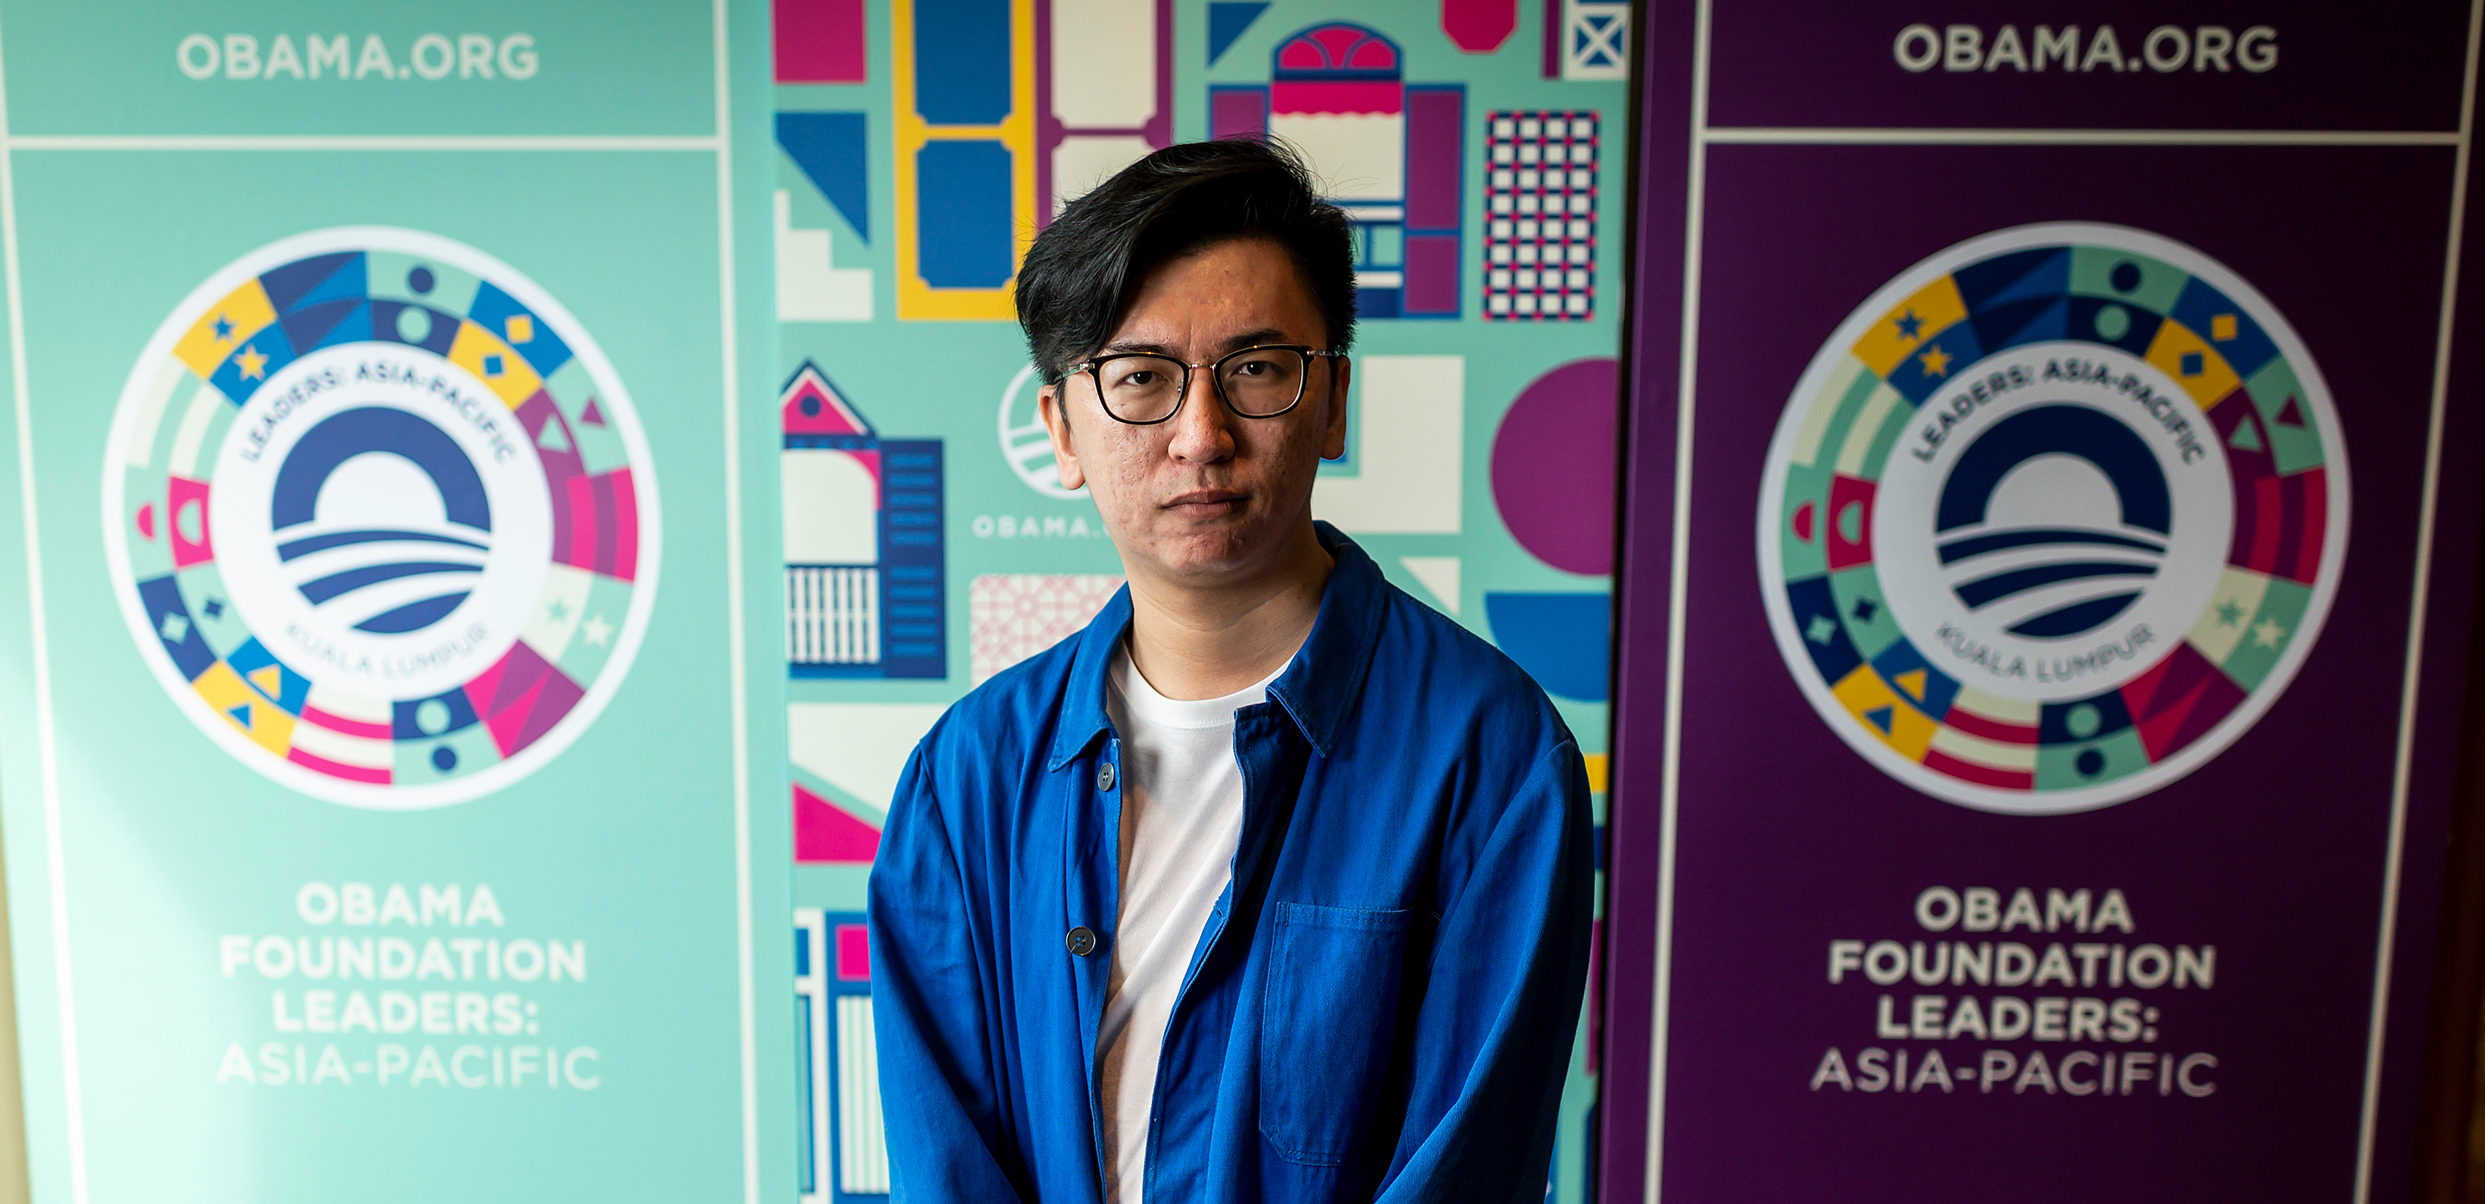 The designer for Leaders: Asia-Pacific, Valen Lim Chong Chin stands in front of his work.